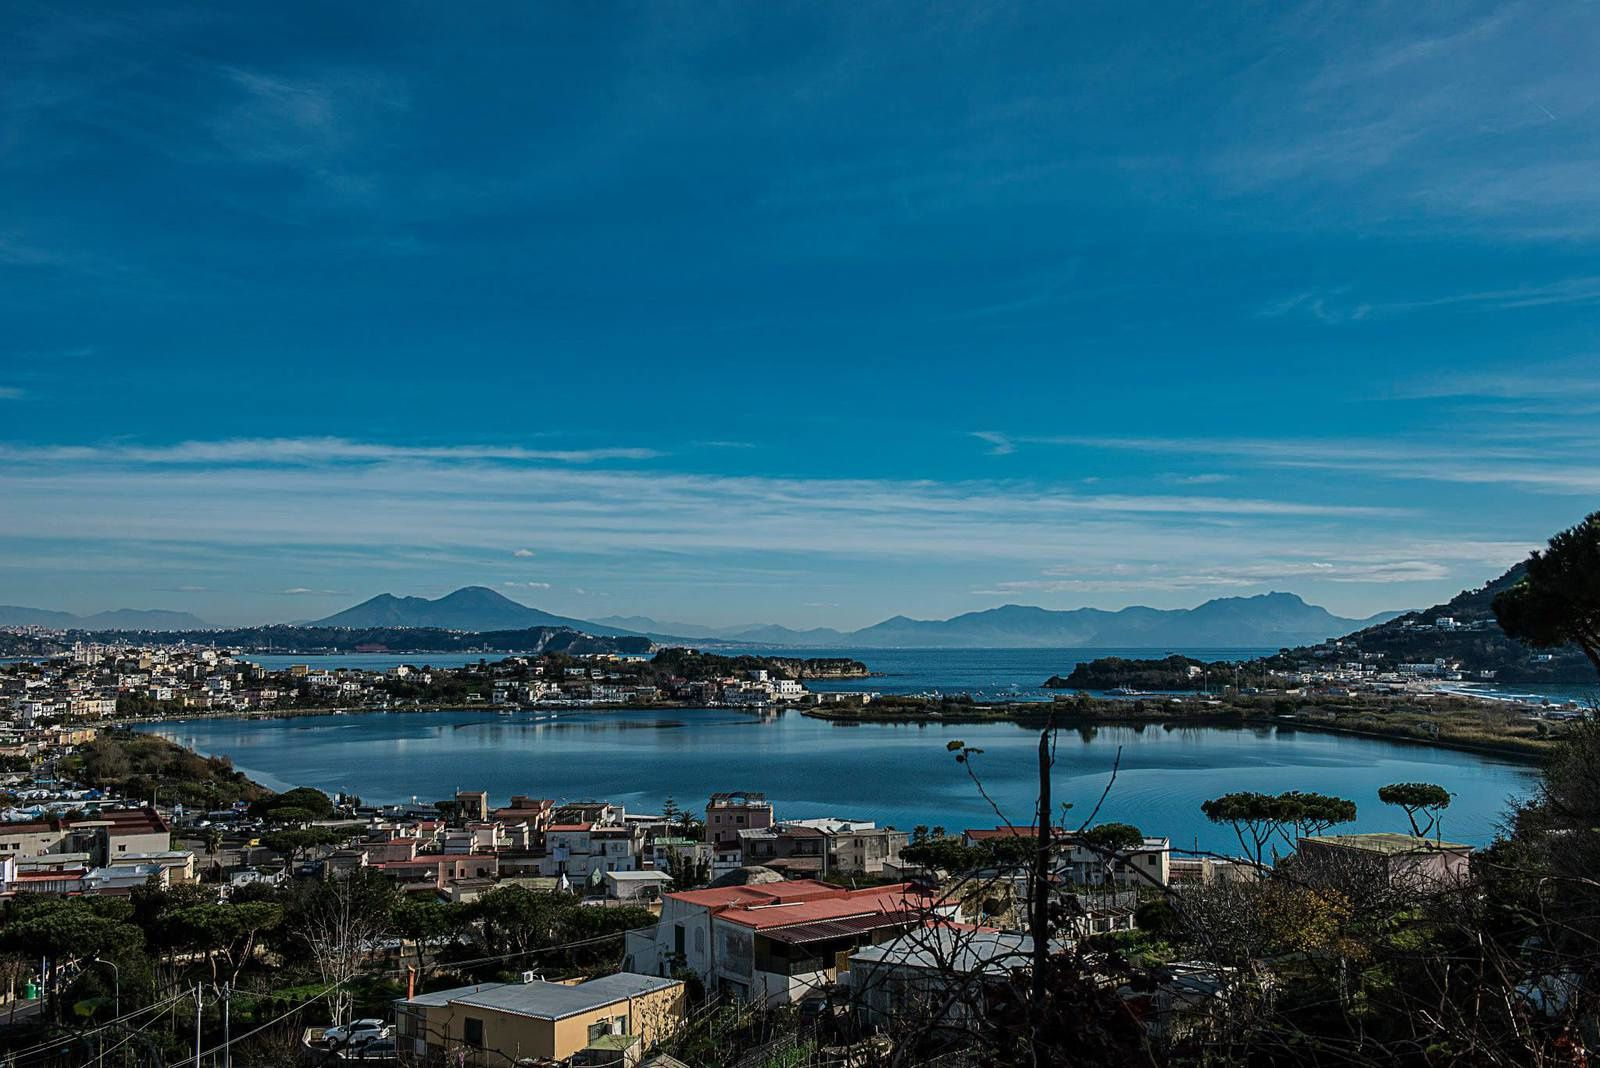 The Campi Flegrei, Pozzuoli Bay and Vesuvius - photo Sergio Coppola